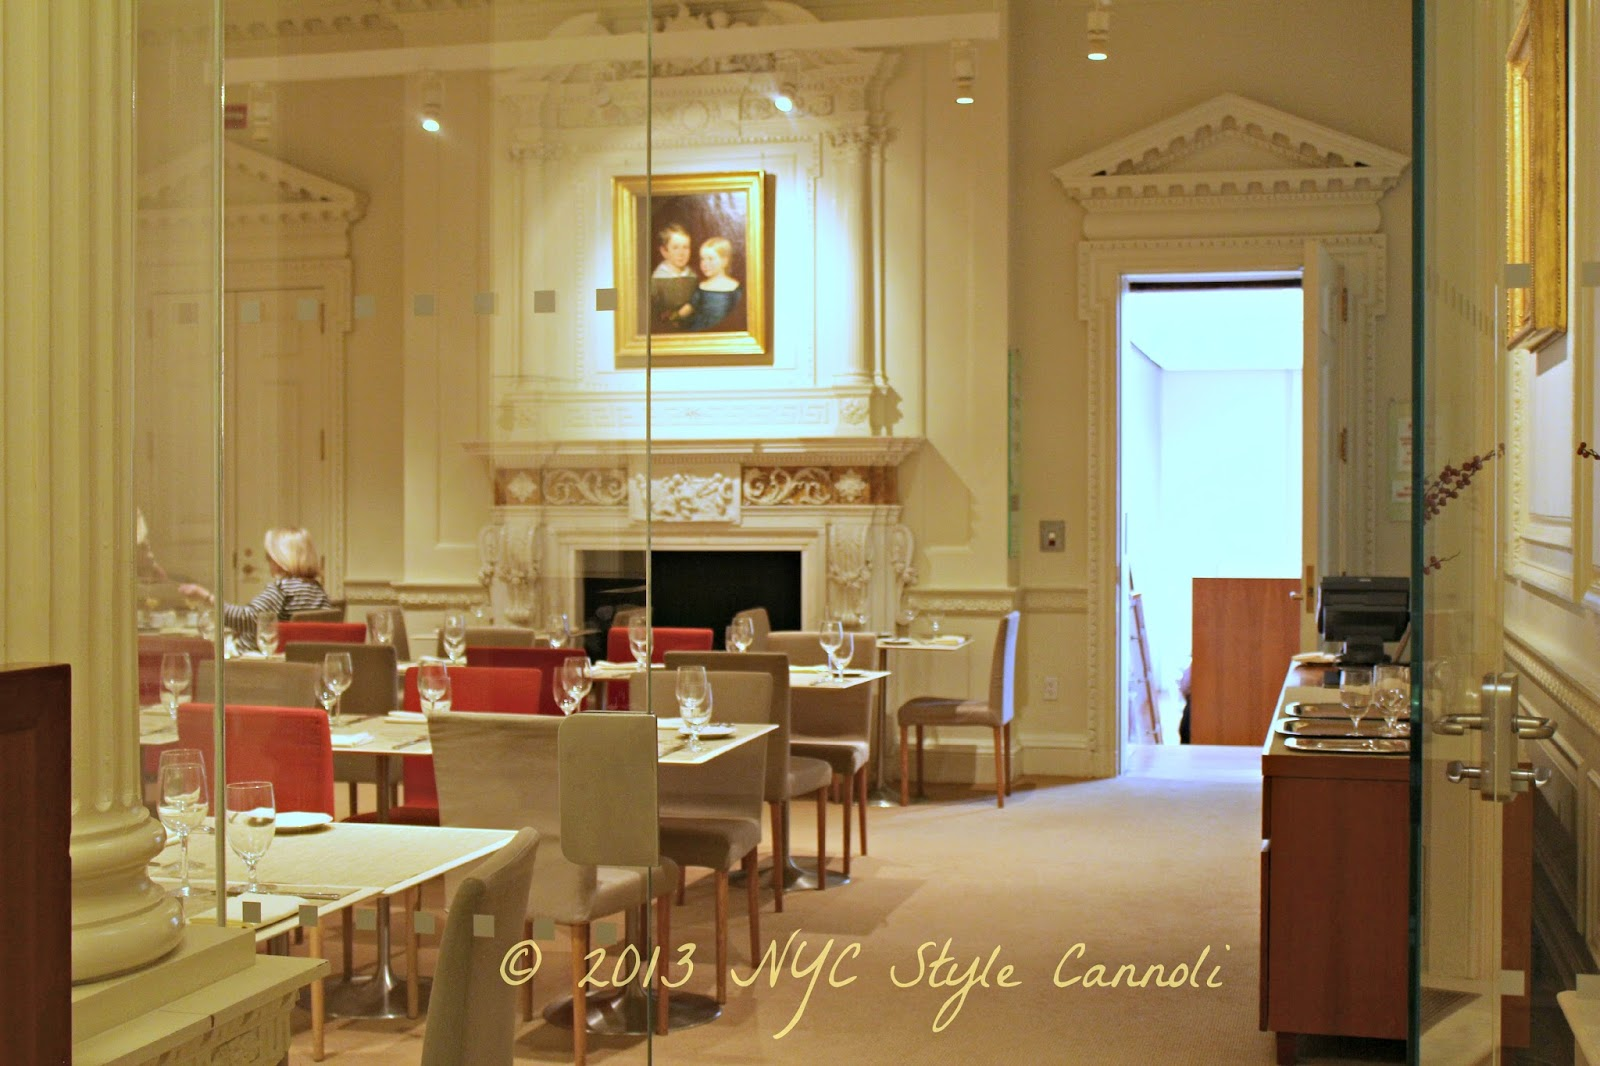 Attrayant The Morgan Dining Room, Where You Can Savor A Fabulous Meal In The Original  Morgan Family Dining Room. A Wonderful Experience Can Be Enjoyed By All.